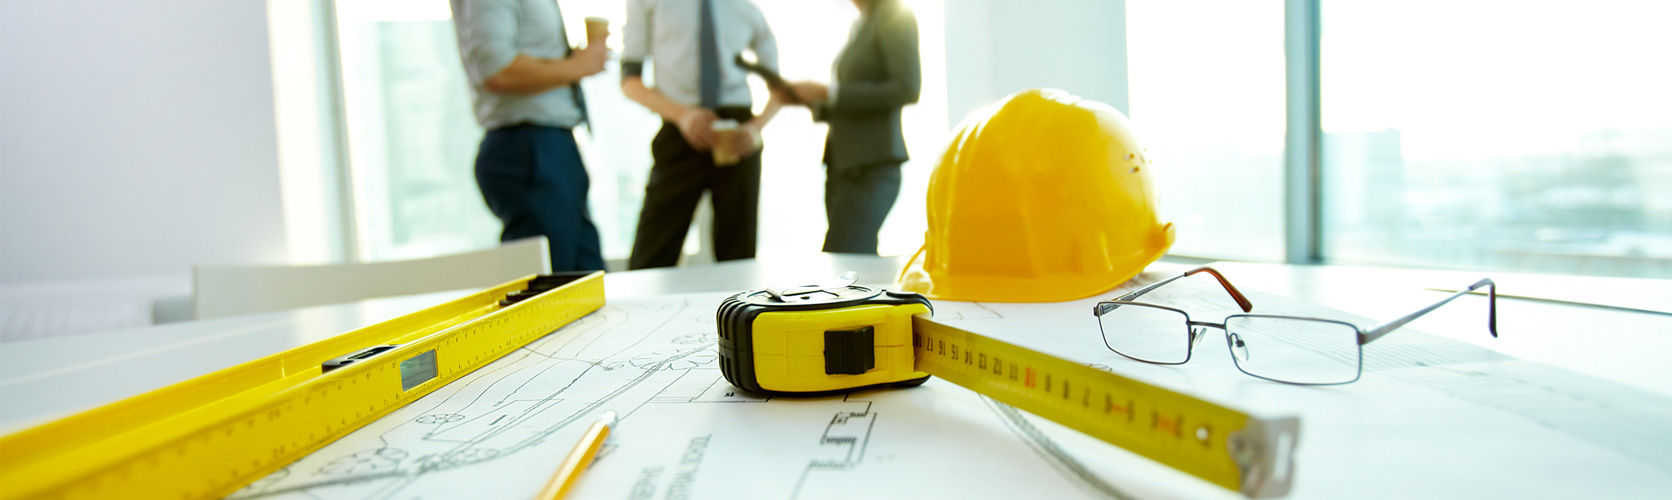 construction market Follow the steps below to identify the major osha construction requirements and guidance materials that may apply to your jobsite these steps will lead you to resources on osha's website.